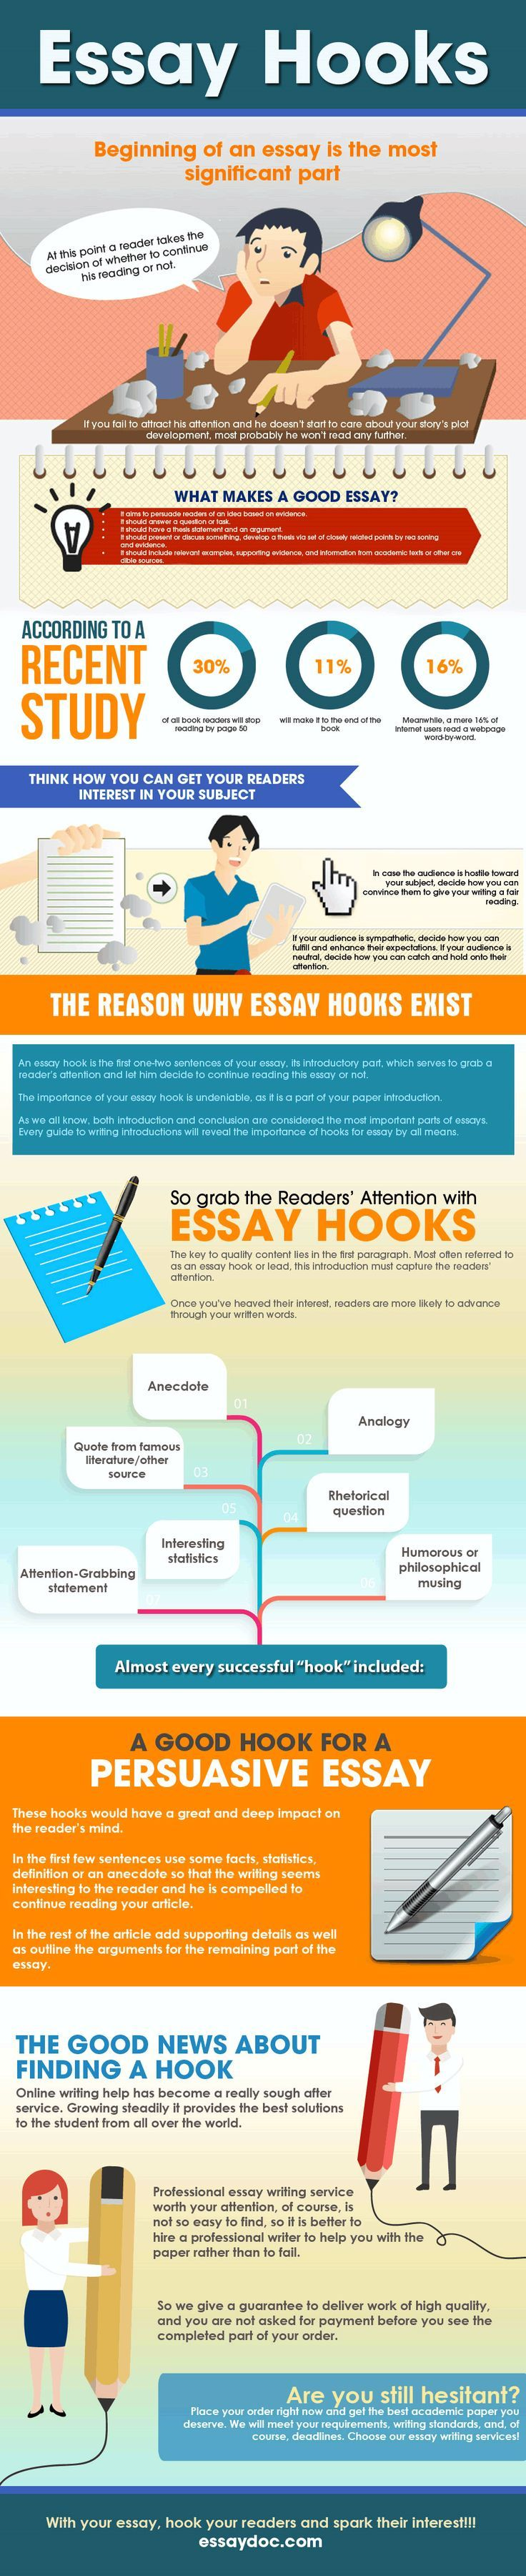 Example Of Proposal Essay Essay Hooks Infographic Education Argumentative Essay On Health Care Reform also Example Of An Essay Proposal Essay Hooks Infographic  Good To Know  Essay Writing Writing  Essays On Importance Of English